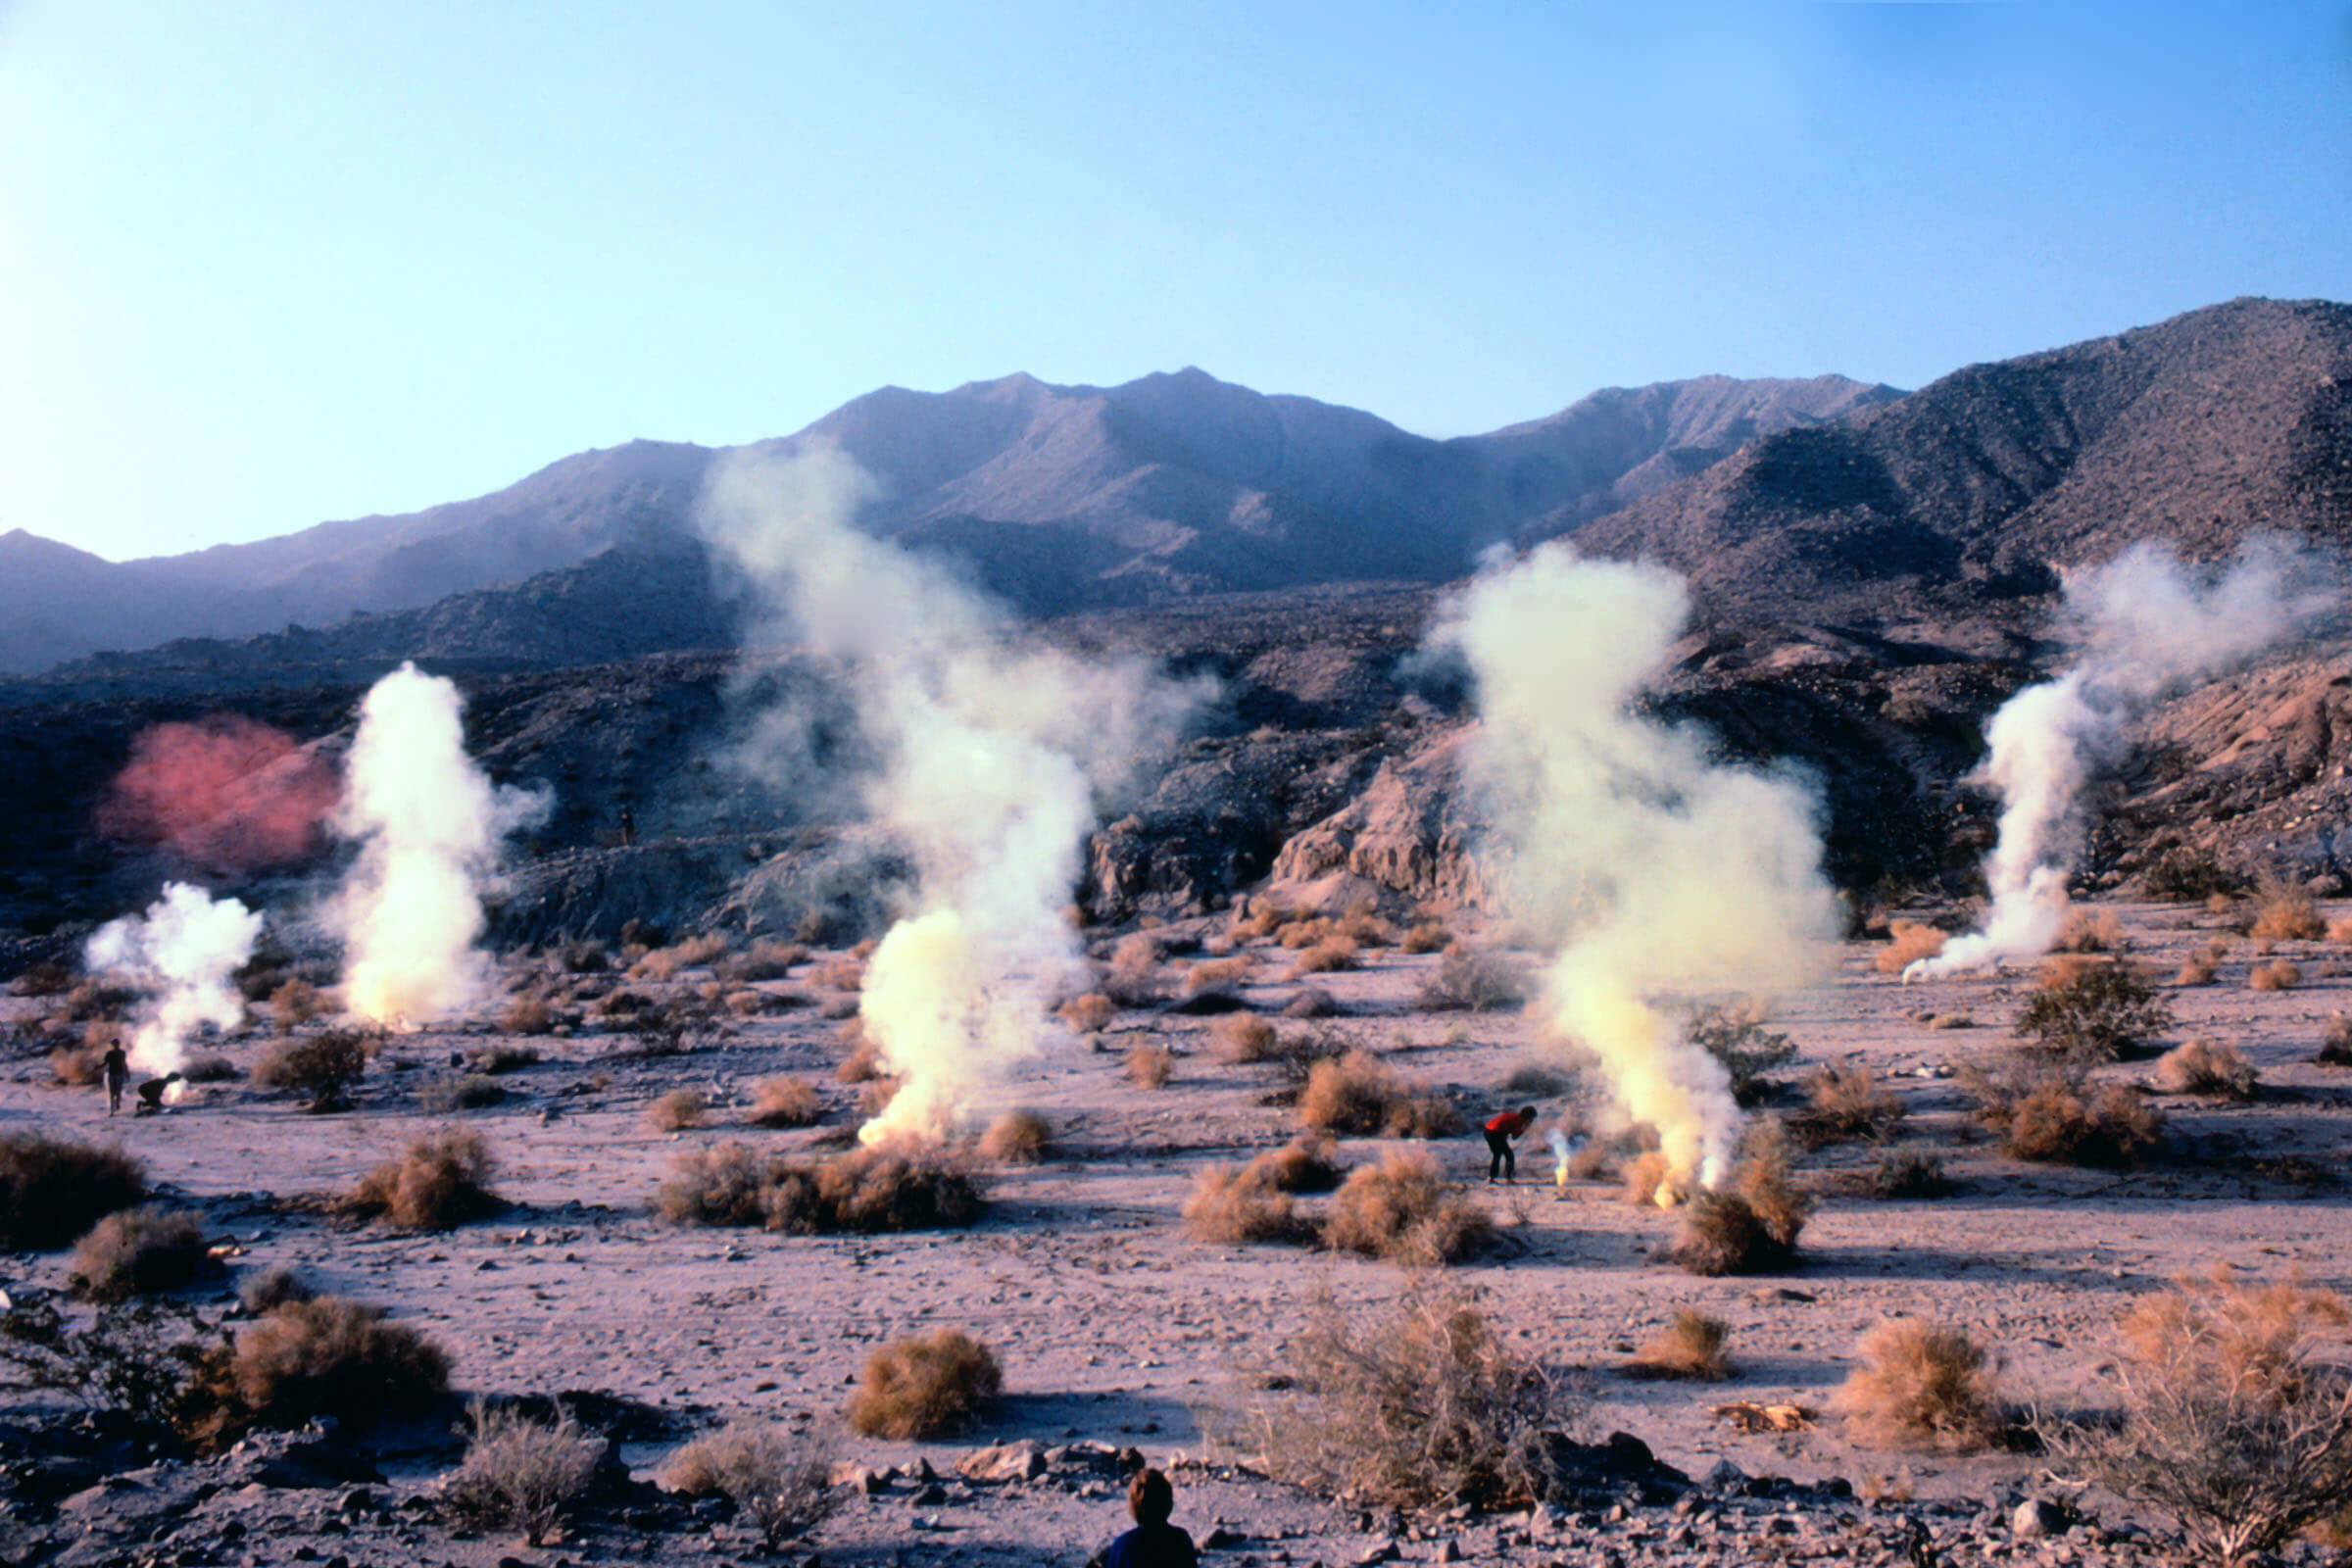 Judy Chicago, _Desert Atmosphere_, Palm Desert, CA, 1969/2020, 30 x 40 inches. Collection of the Nevada Museum of Art, Center for Art + Environment Archive Collections.